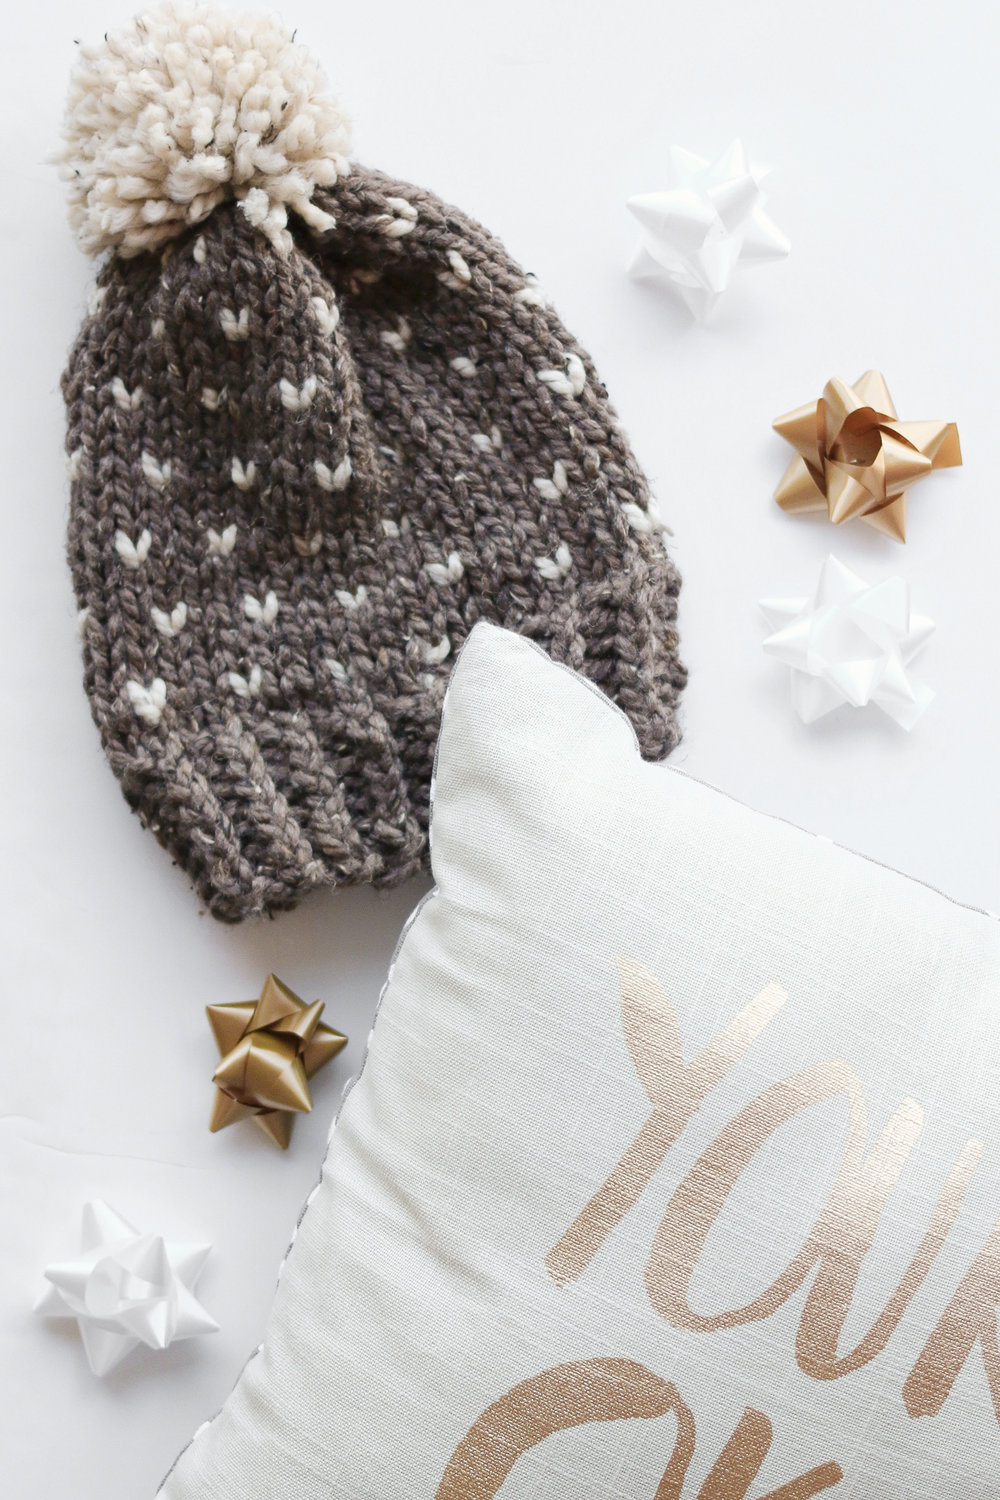 Christmas Gift Ideas For When You're Broke | A Girl, Obsessed